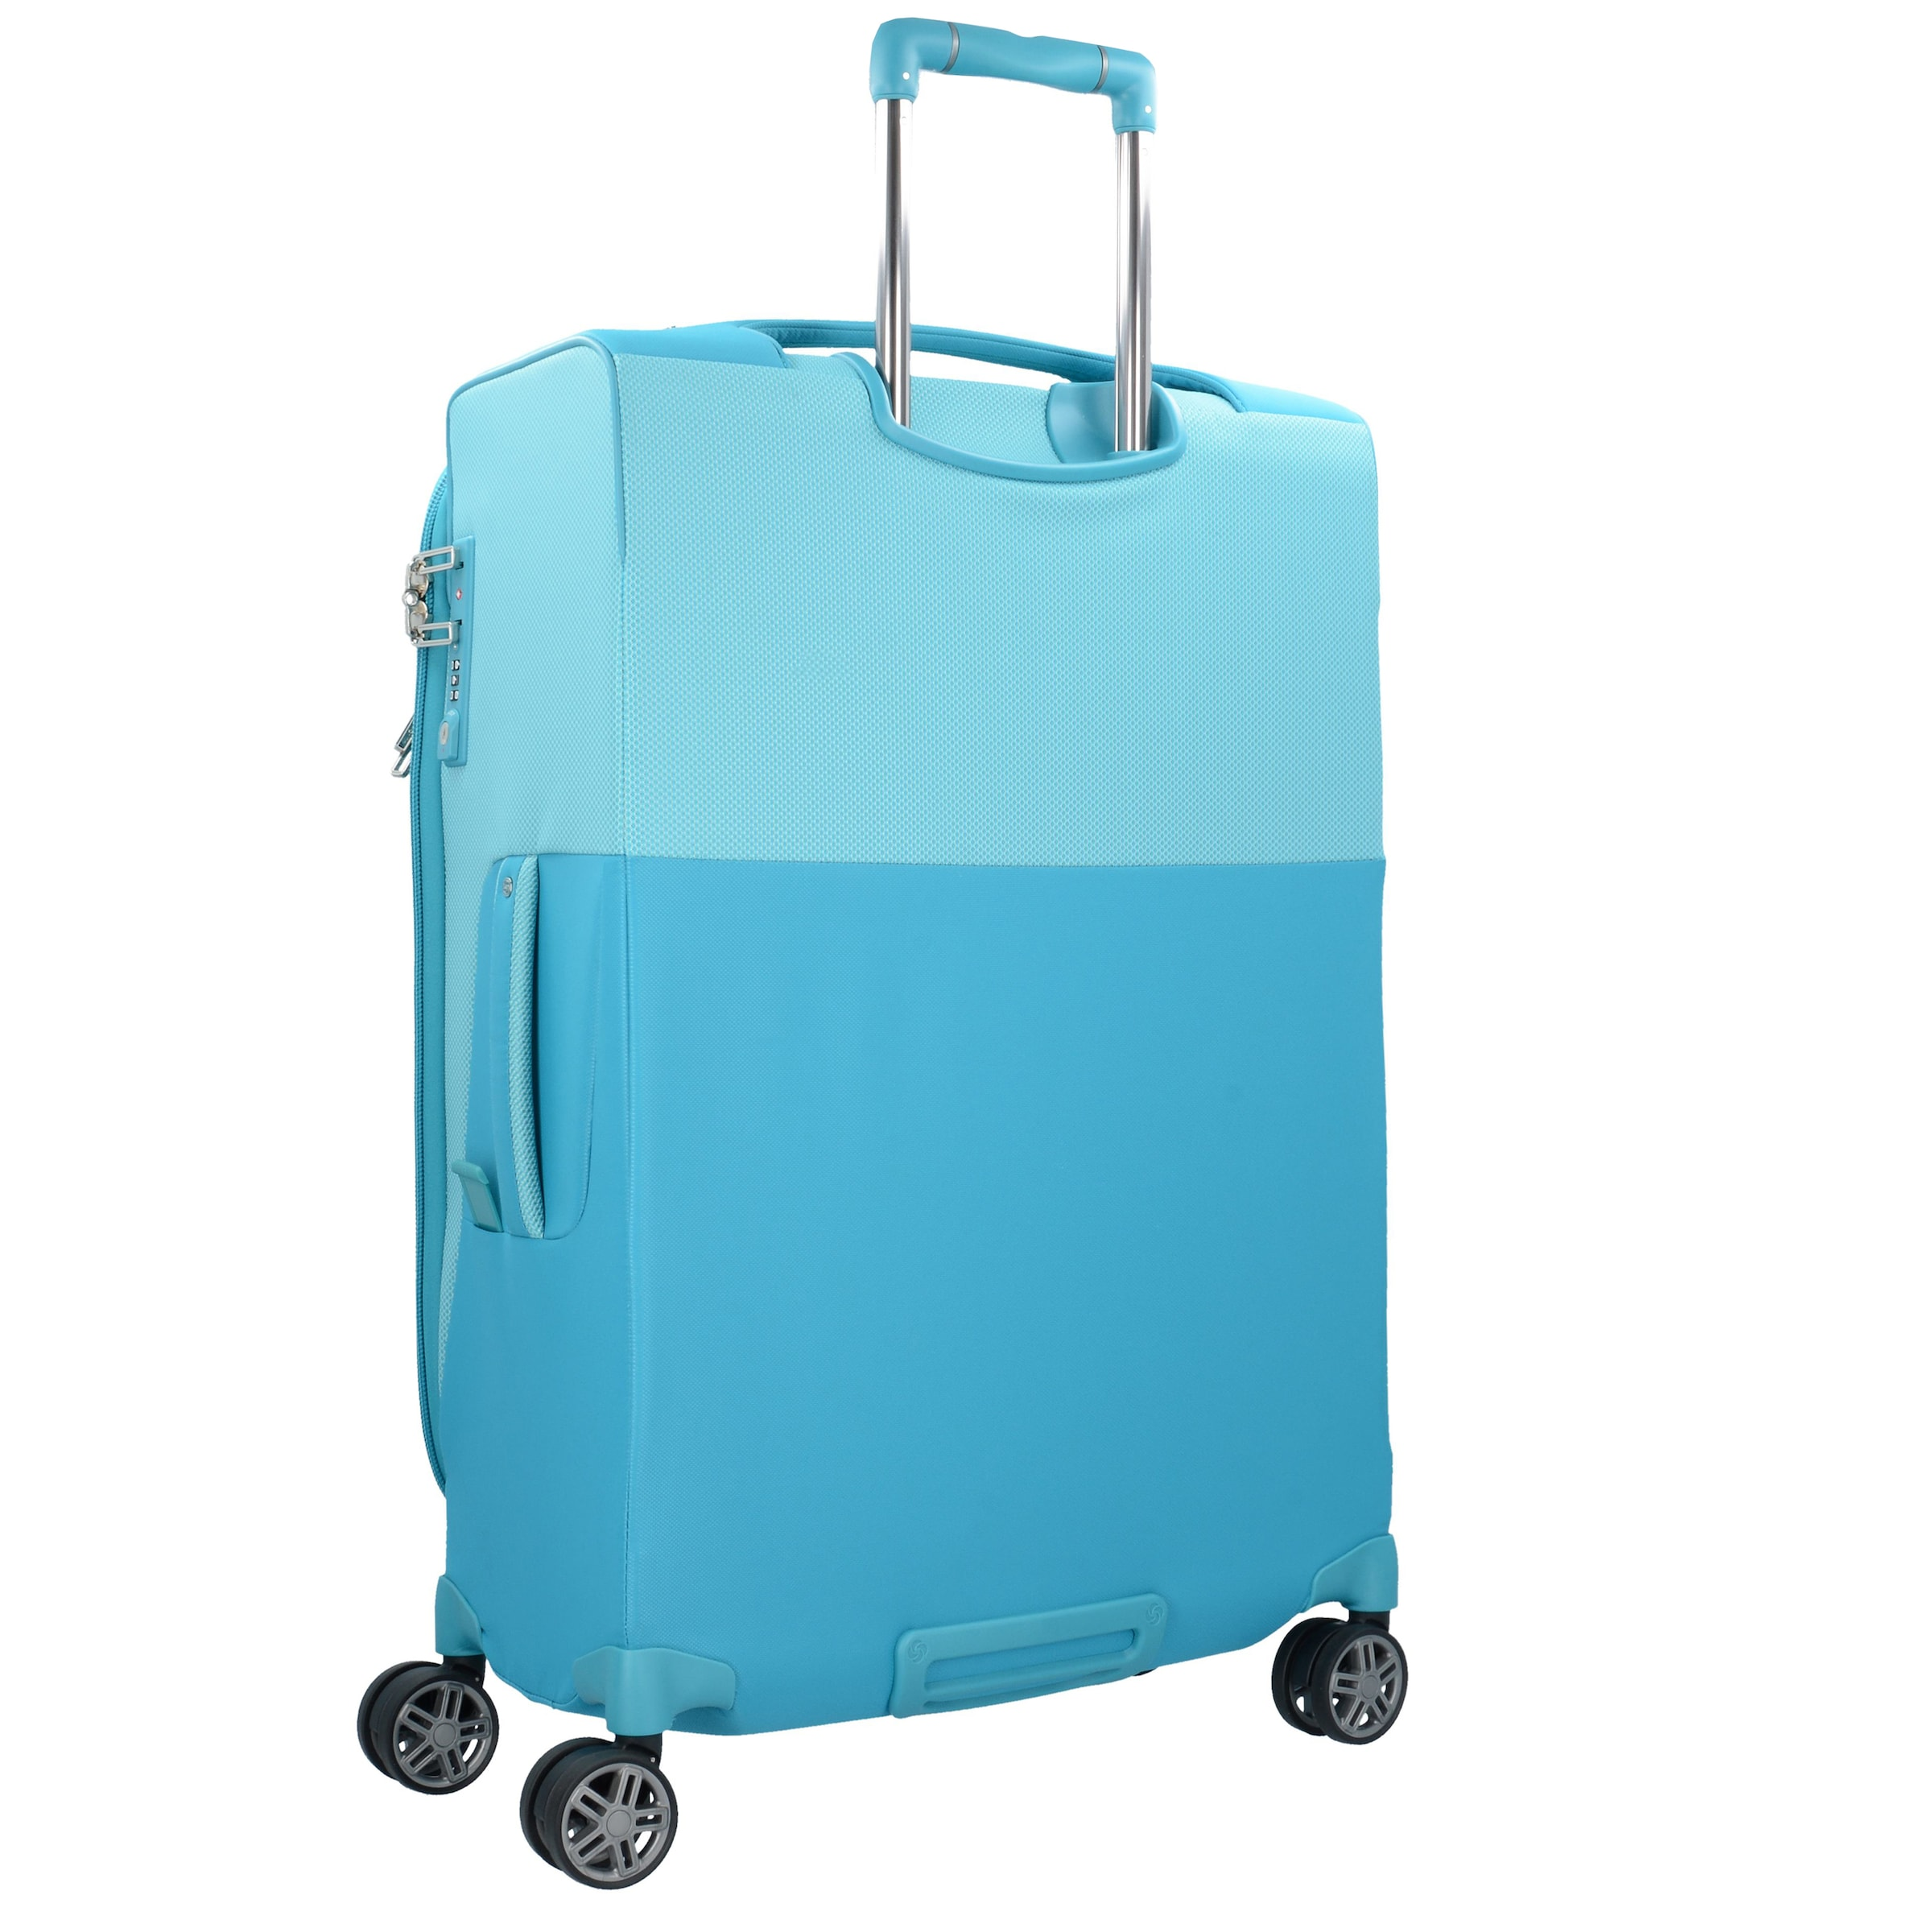 In Samsonite In Hellblau In Hellblau Samsonite Samsonite Trolley Trolley Hellblau Trolley Samsonite SpGUjqzMLV